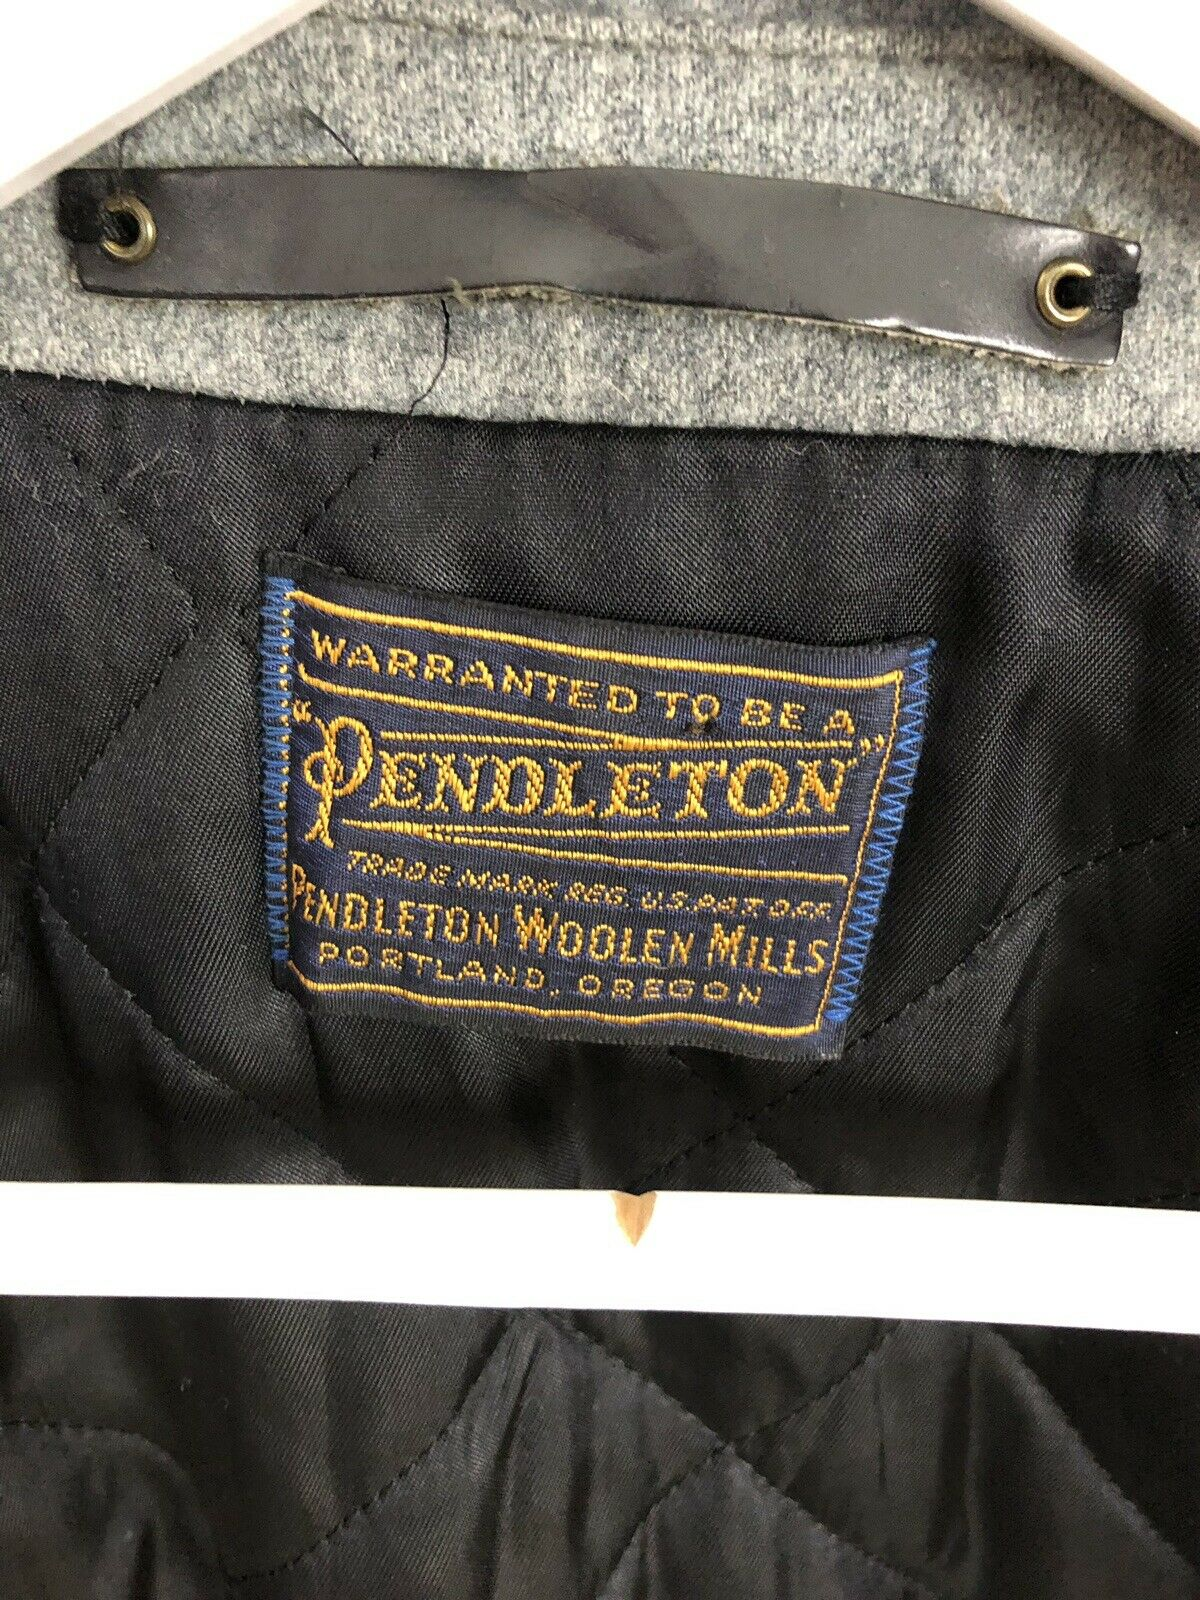 PENDLETON Vintage Overcoat - 44R - Wool - grau - - - Great Condition - Men's | Stabile Qualität